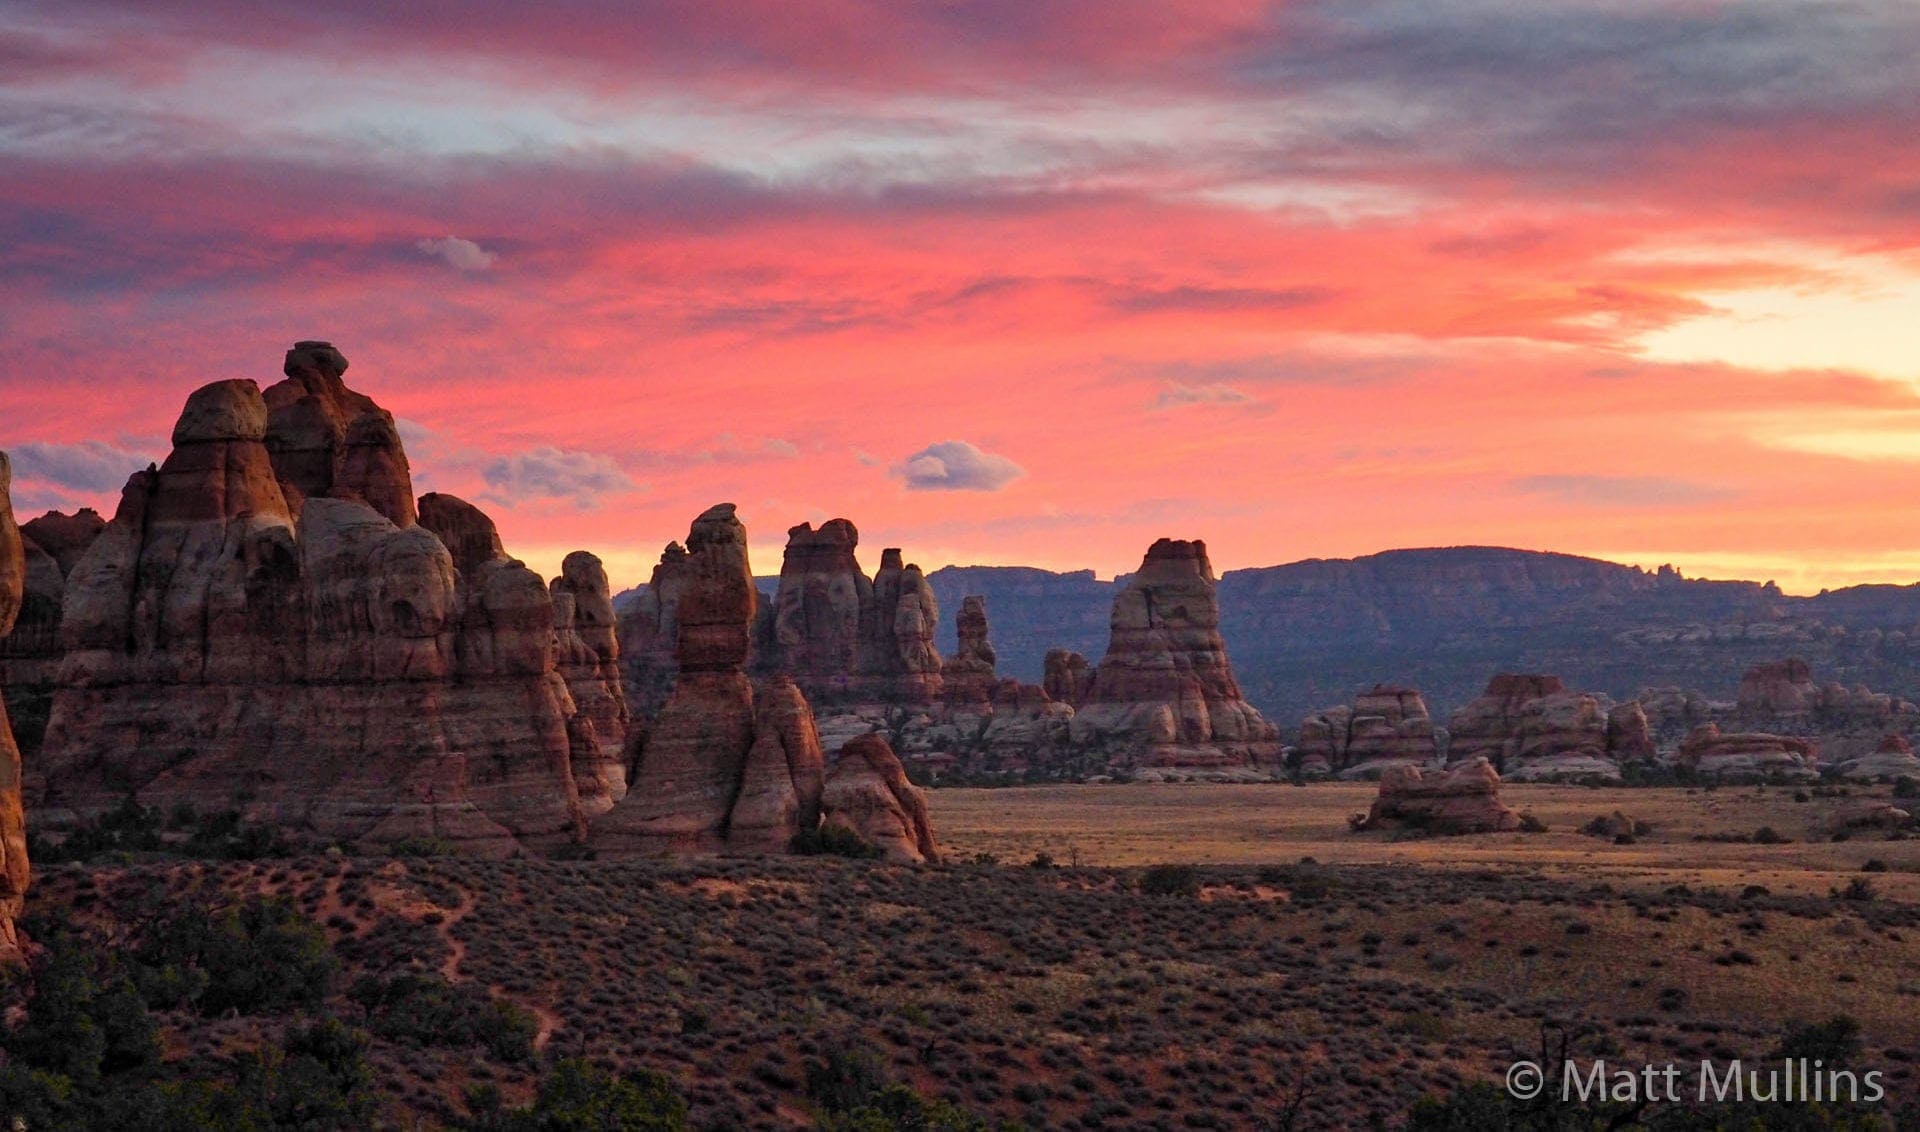 Canyonlands National Park, The Needles District